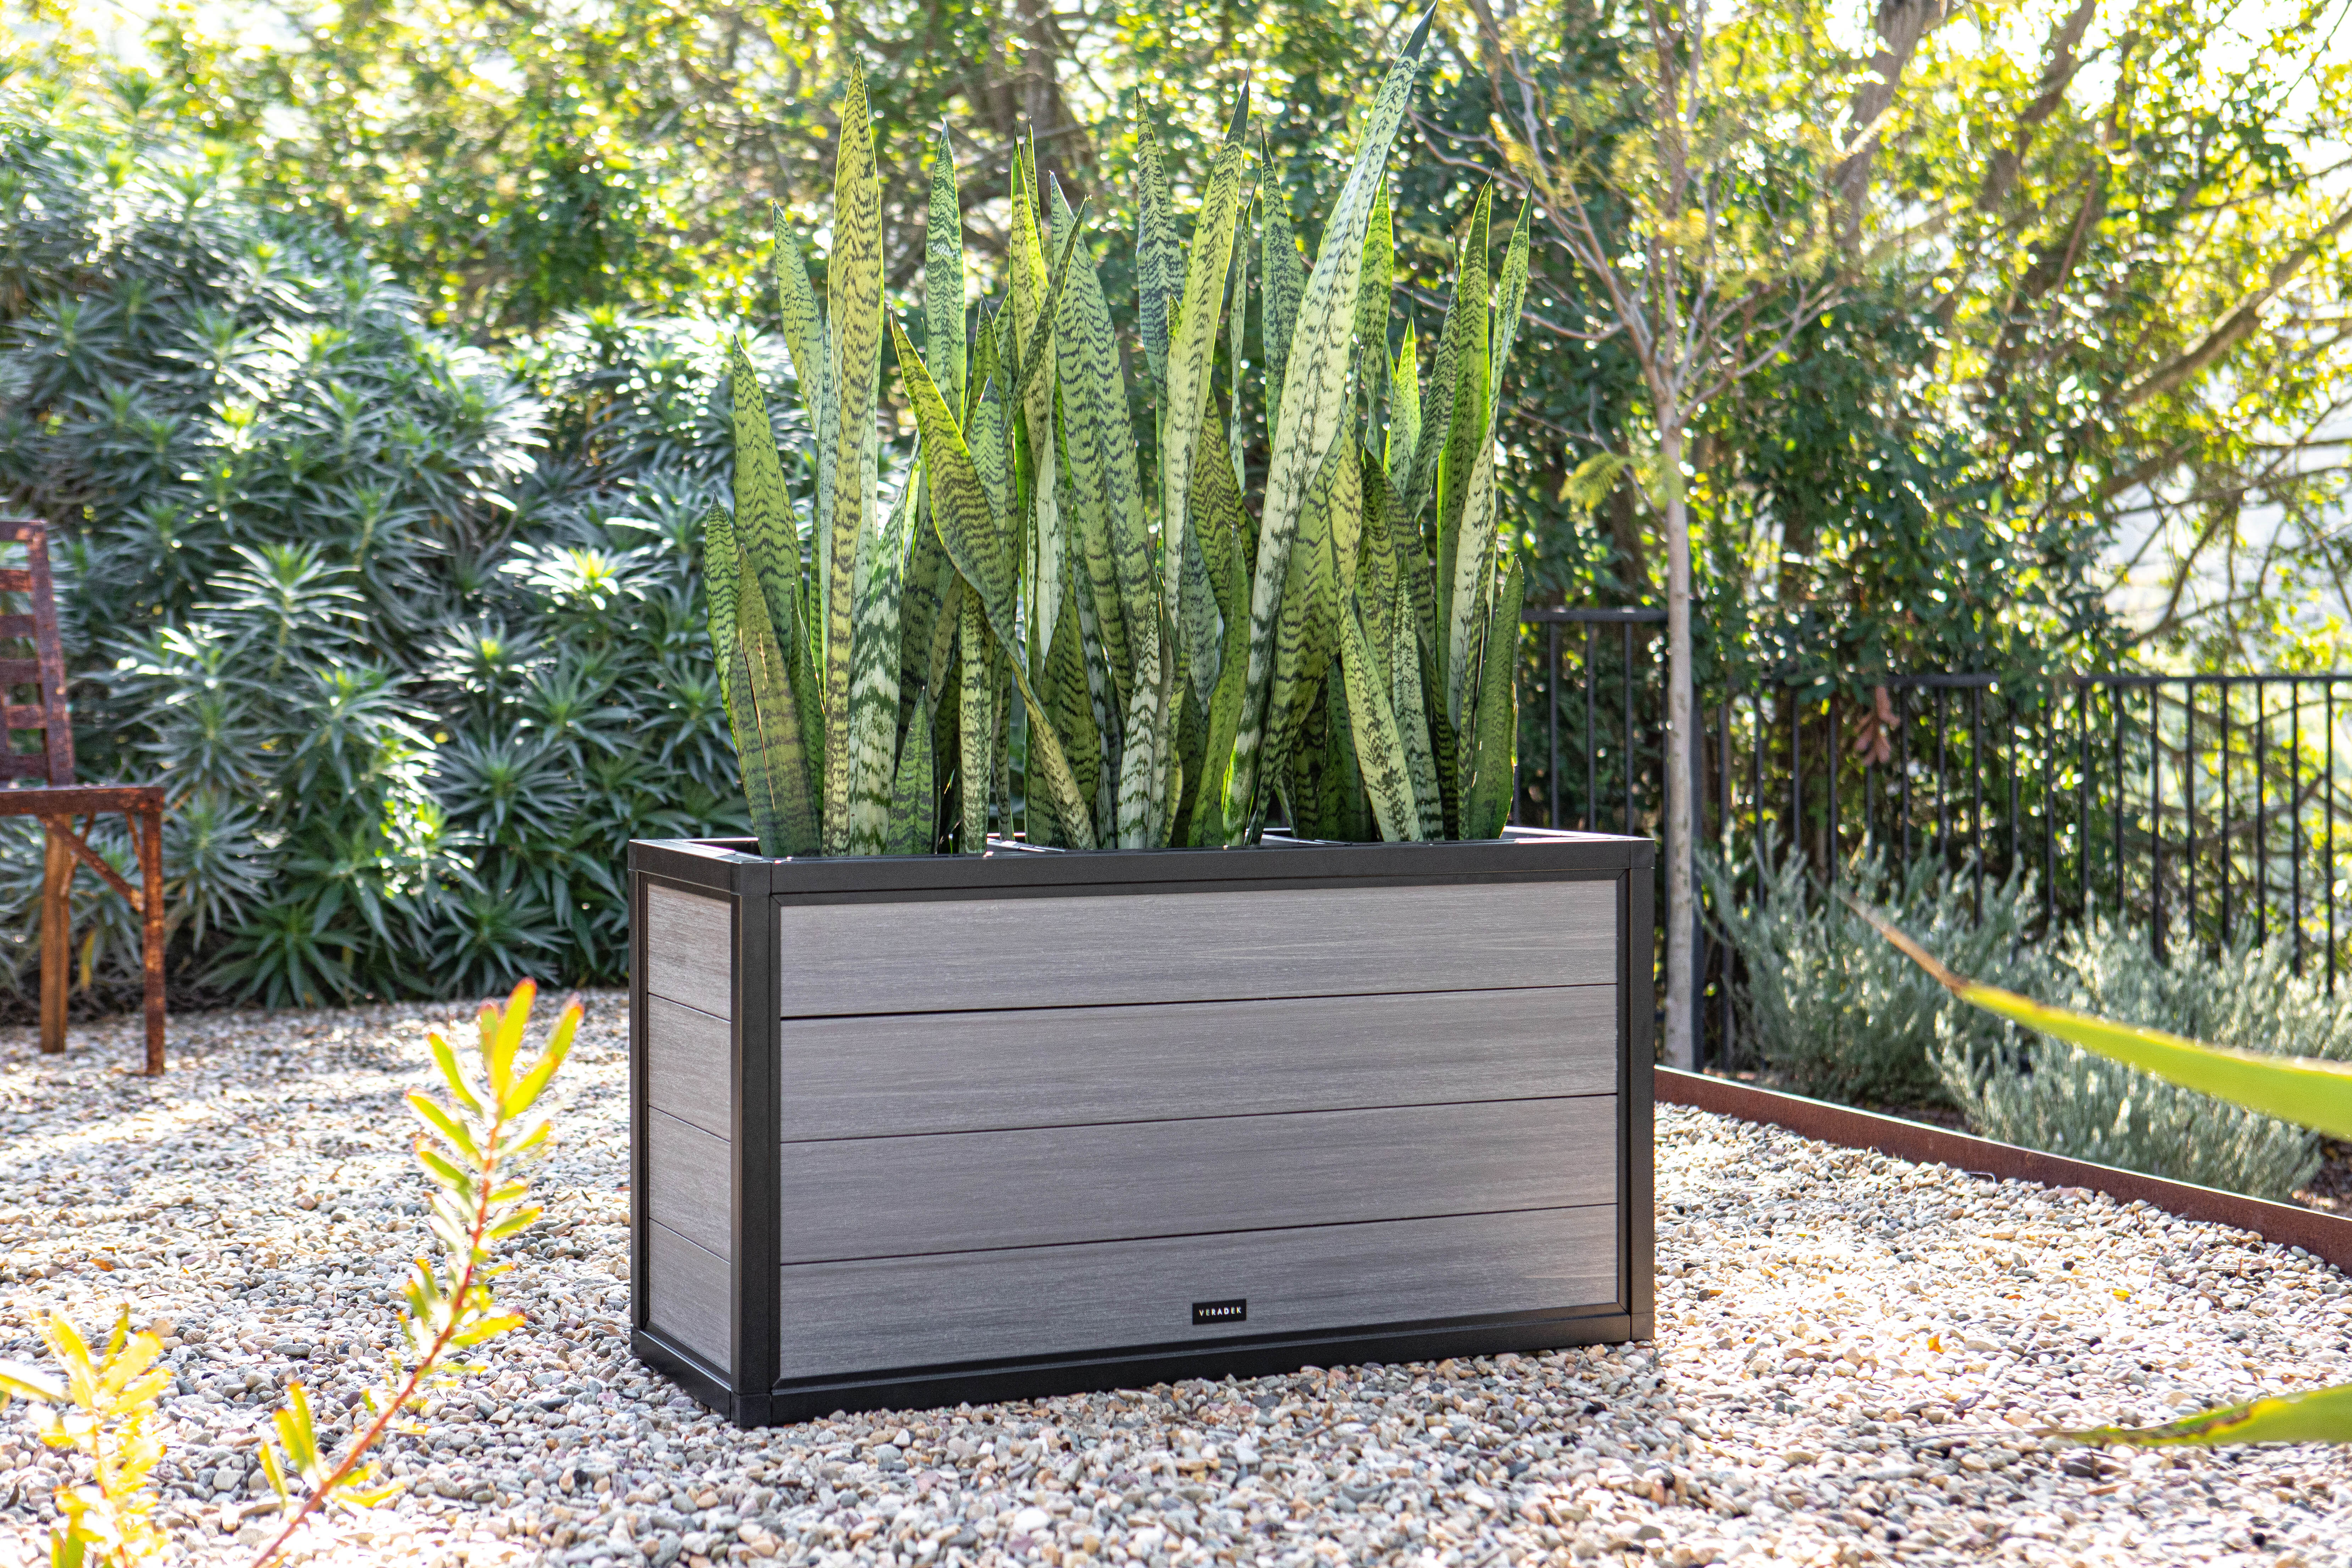 Large Self Watering Planters You Ll Love In 2021 Wayfair